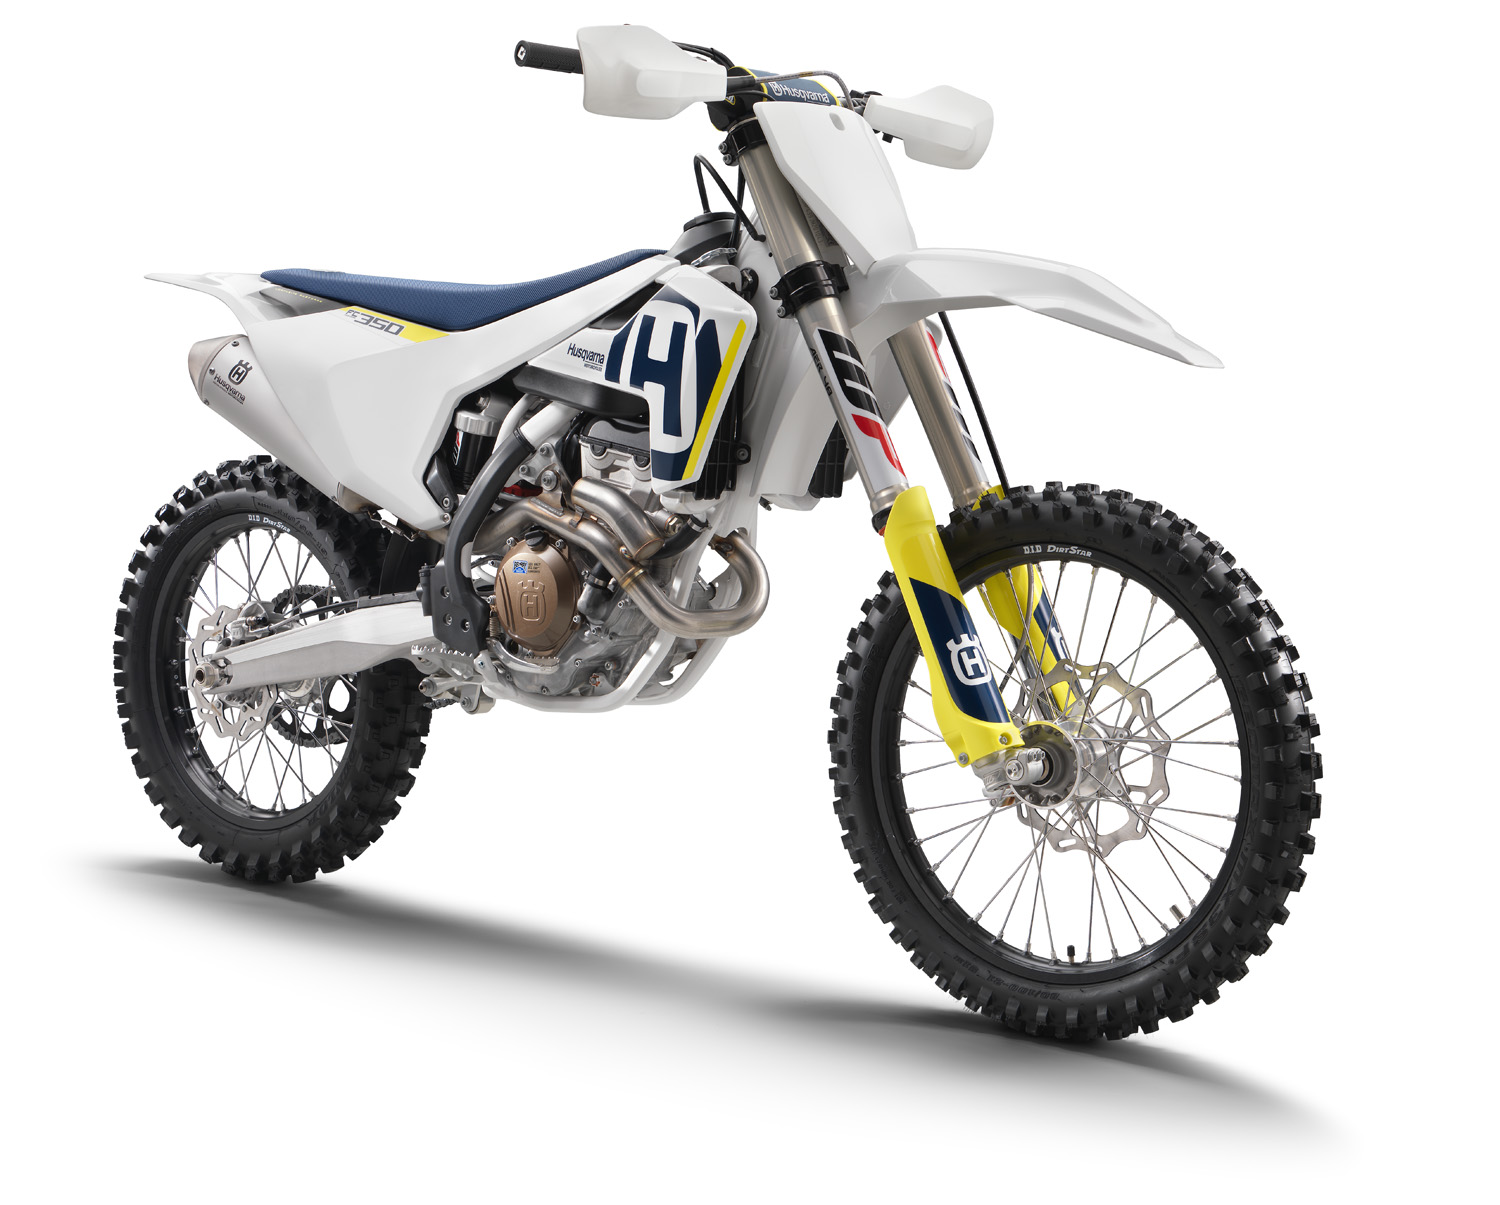 Evo Factory furthermore 2018 Husqvarna Mx Four Stroke Models additionally Ktm 690 Enduro R Adventure Touring Enduro furthermore Minsk 125cc together with 2008 Yamaha Yzf R1  parison 2. on 2 cylinder dirt bike